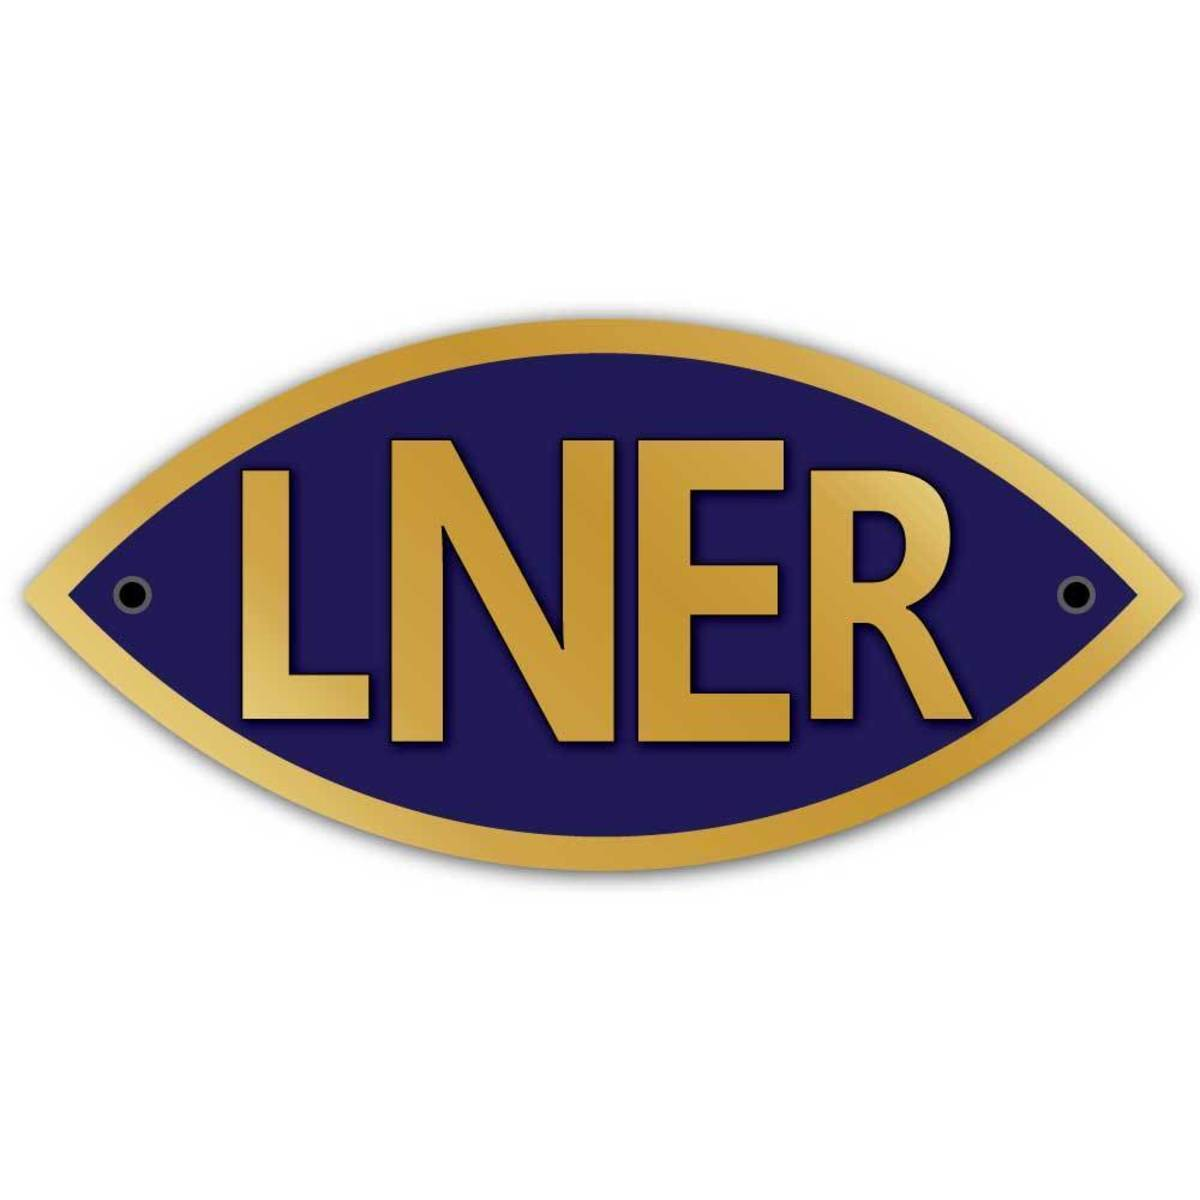 From 1923 until 1947 the amalgamated east coast companies were known officially as the London & North Eastern Railway (LNER). This might seem more than a nod to the NER. The region suffered badly in the Depression when industry took a downturn